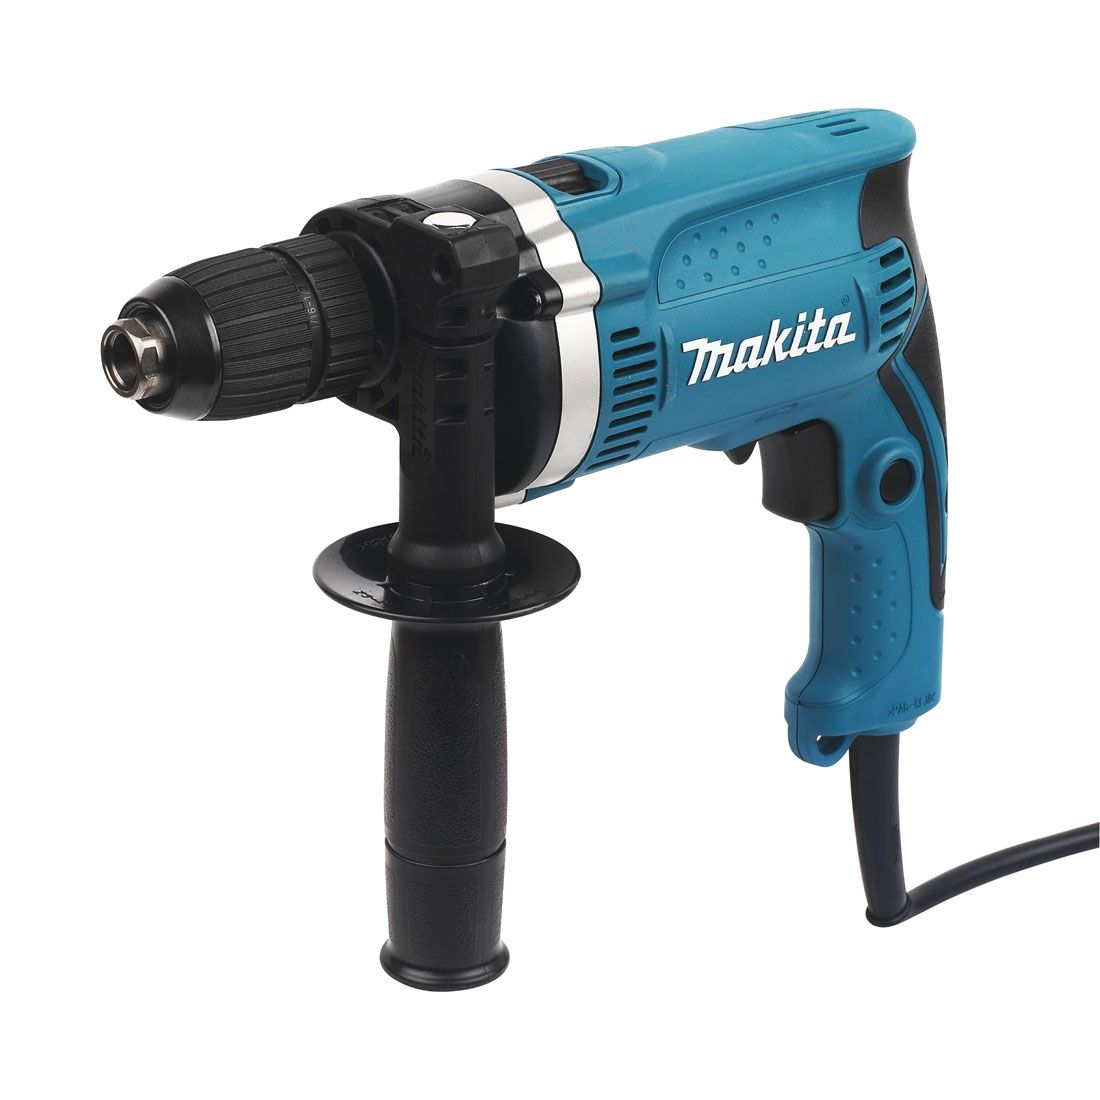 Makita Single Speed Impact Drill 240v MAKHP1641 | It has a cylinder-shaped motor housing and aluminium gear housing cover to provide high performance. | toolforce.ie